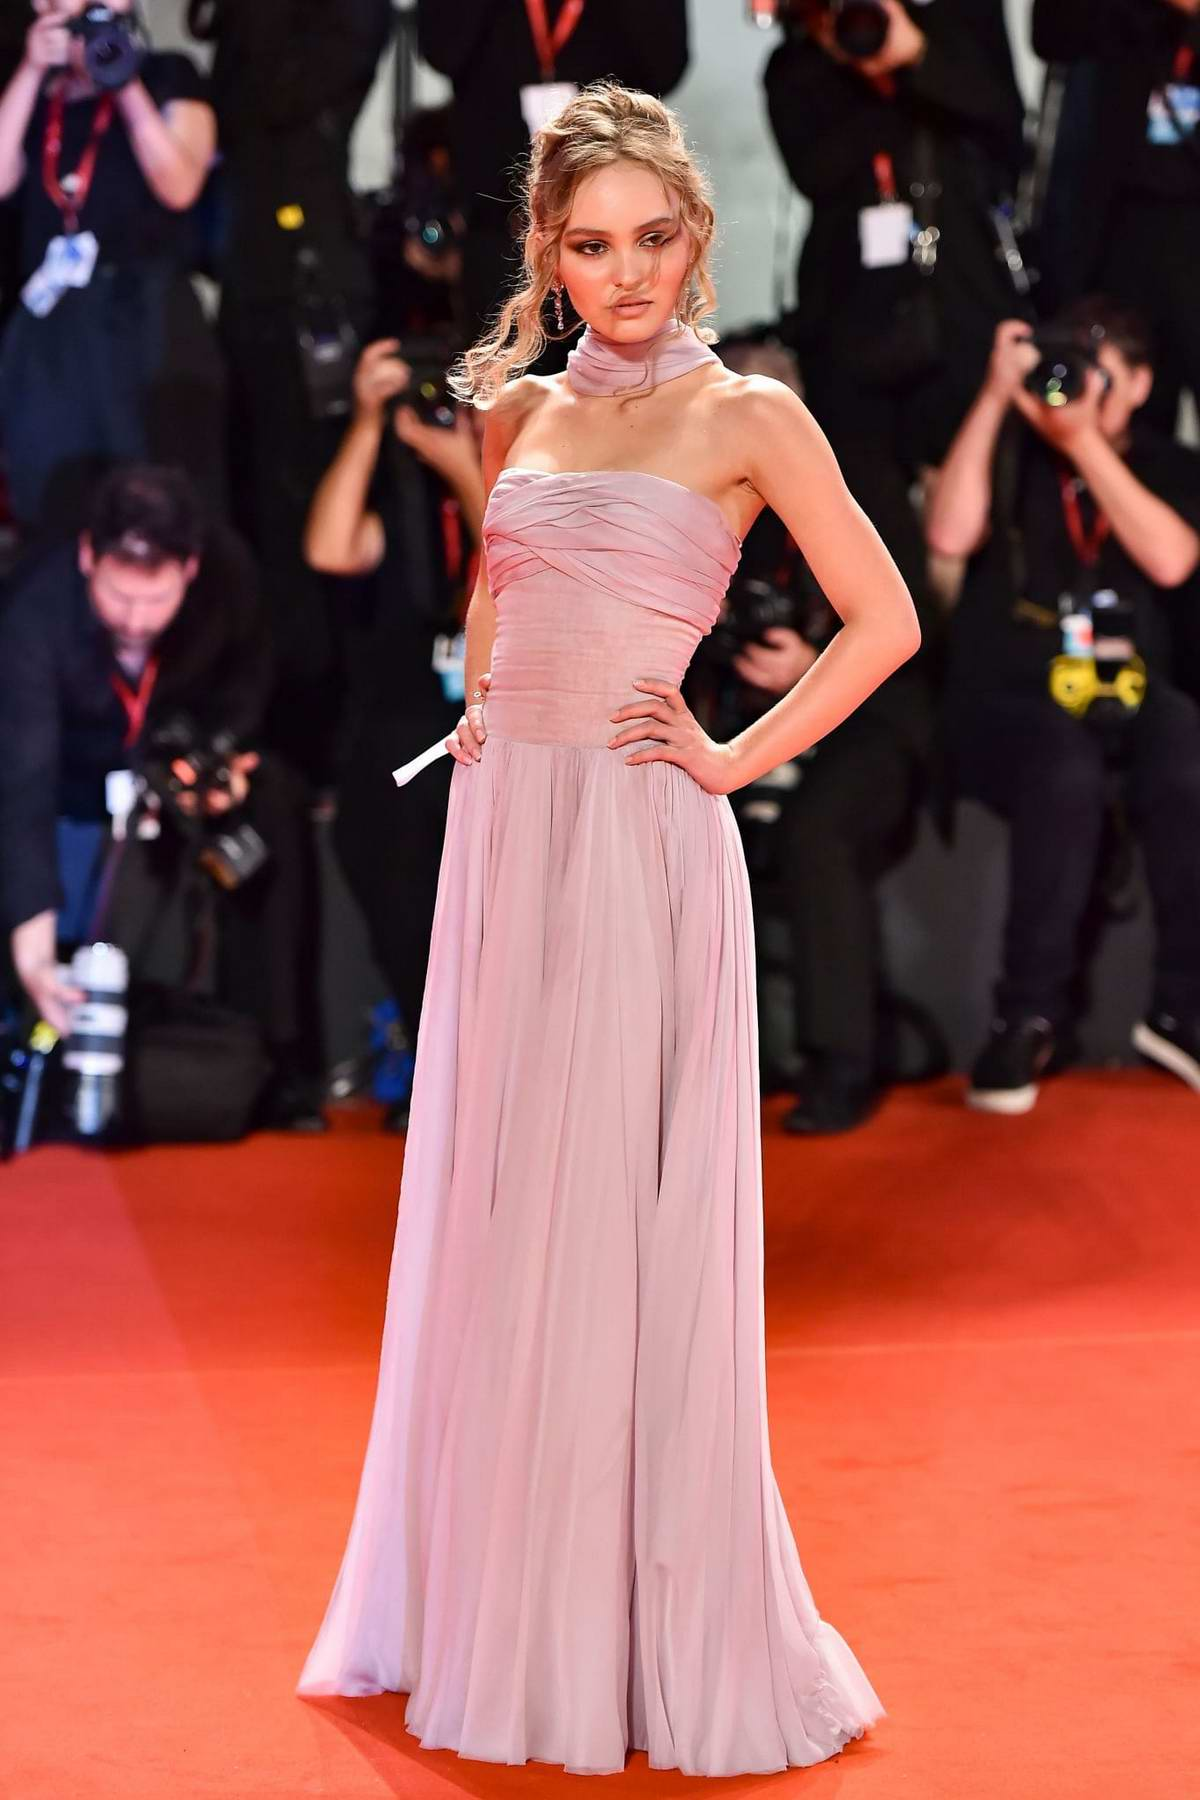 Lily-Rose Depp attends 'The King' Screening during the 76th Venice Film Festival at Sala Grande in Venice, Italy